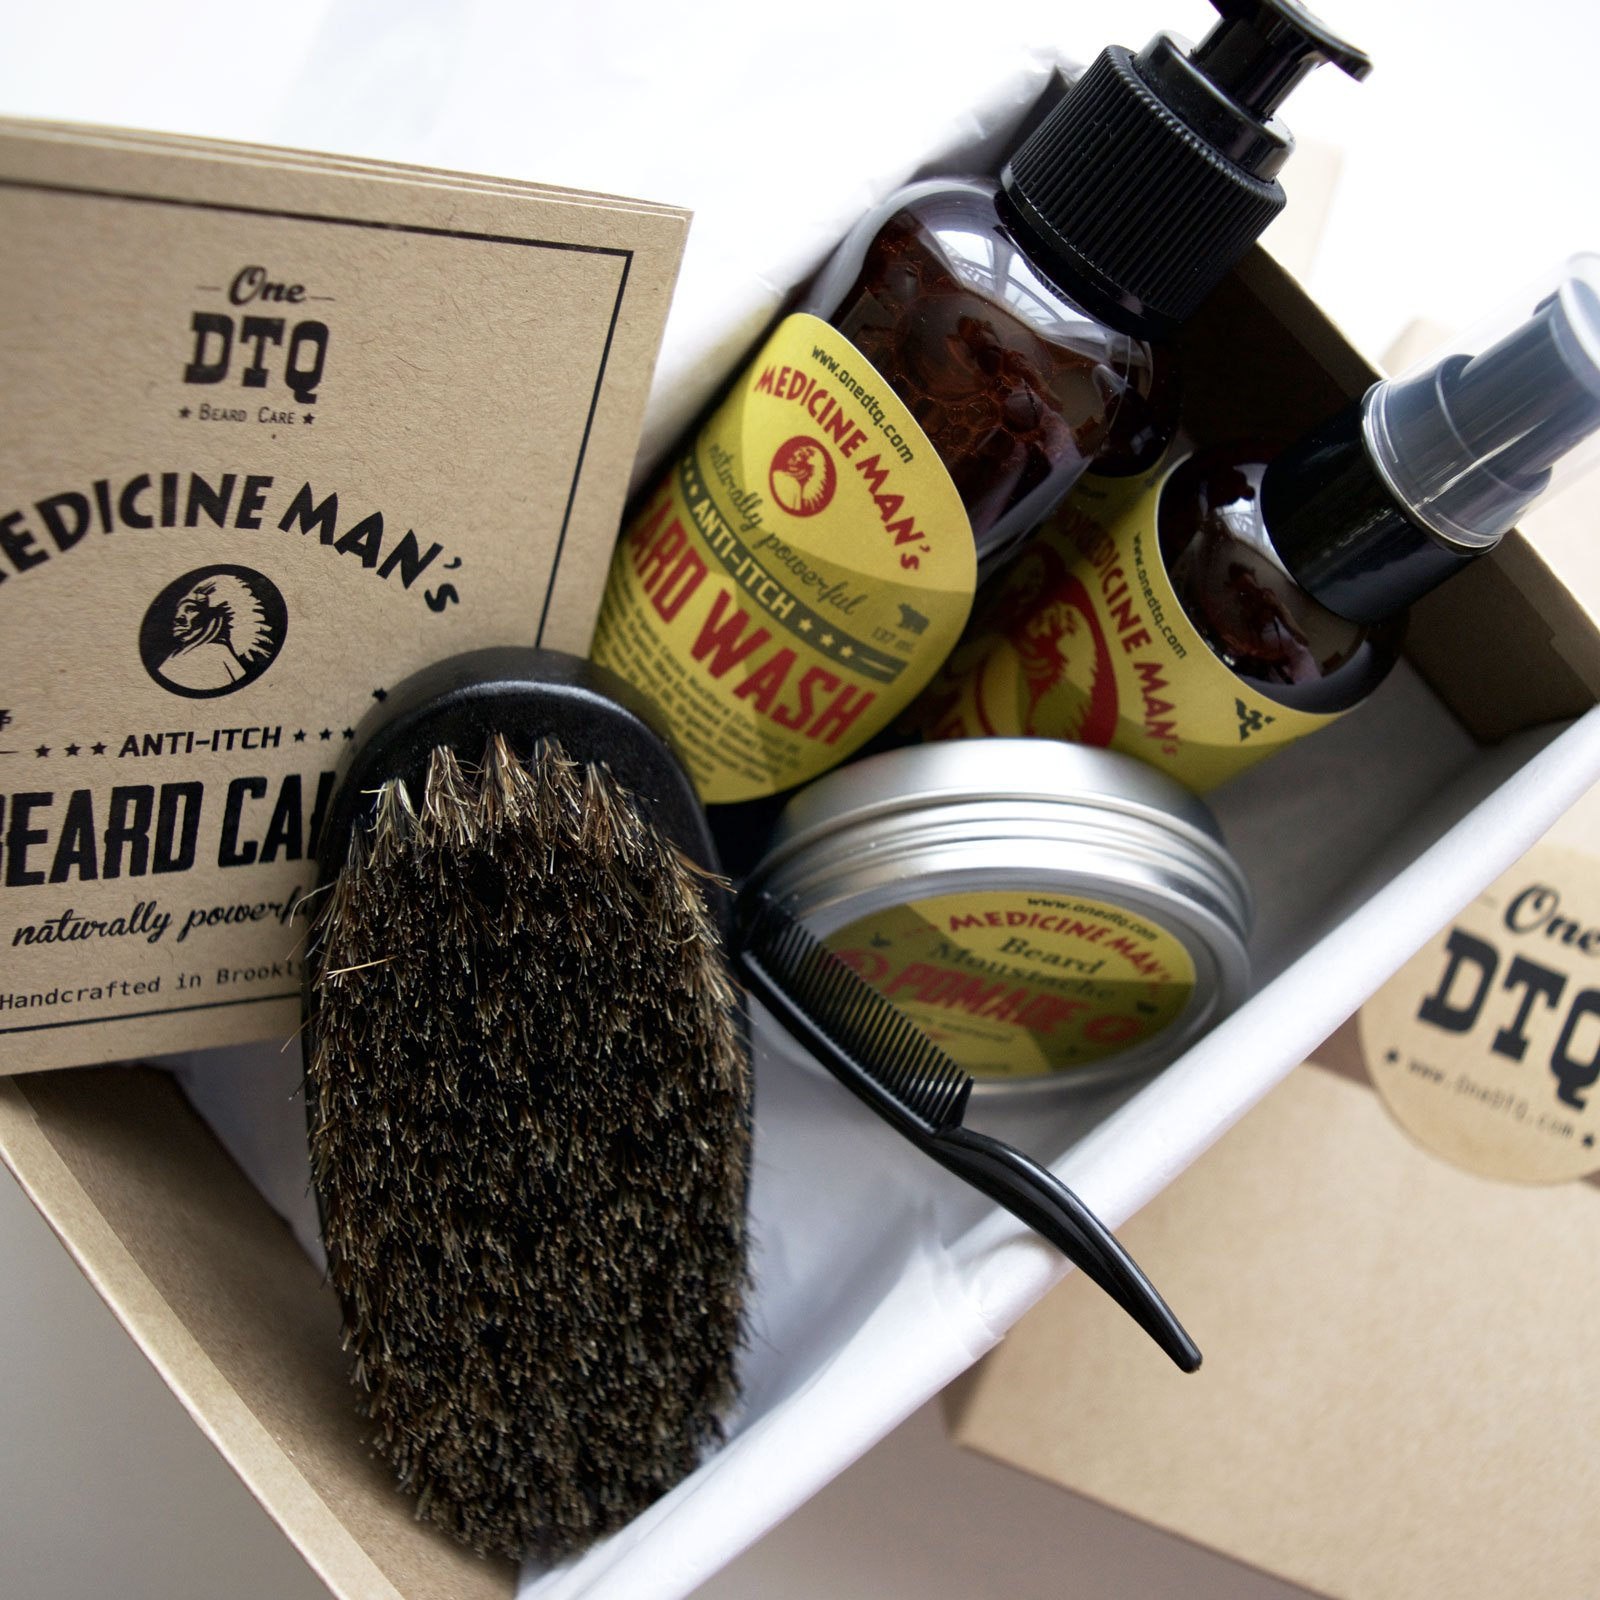 Medicine Man's Anti-Itch Beard & Mustache Kit - Beard Itch Wash, Oil, Balm, Brush - Beard Treatment Products in Premium Gift Box